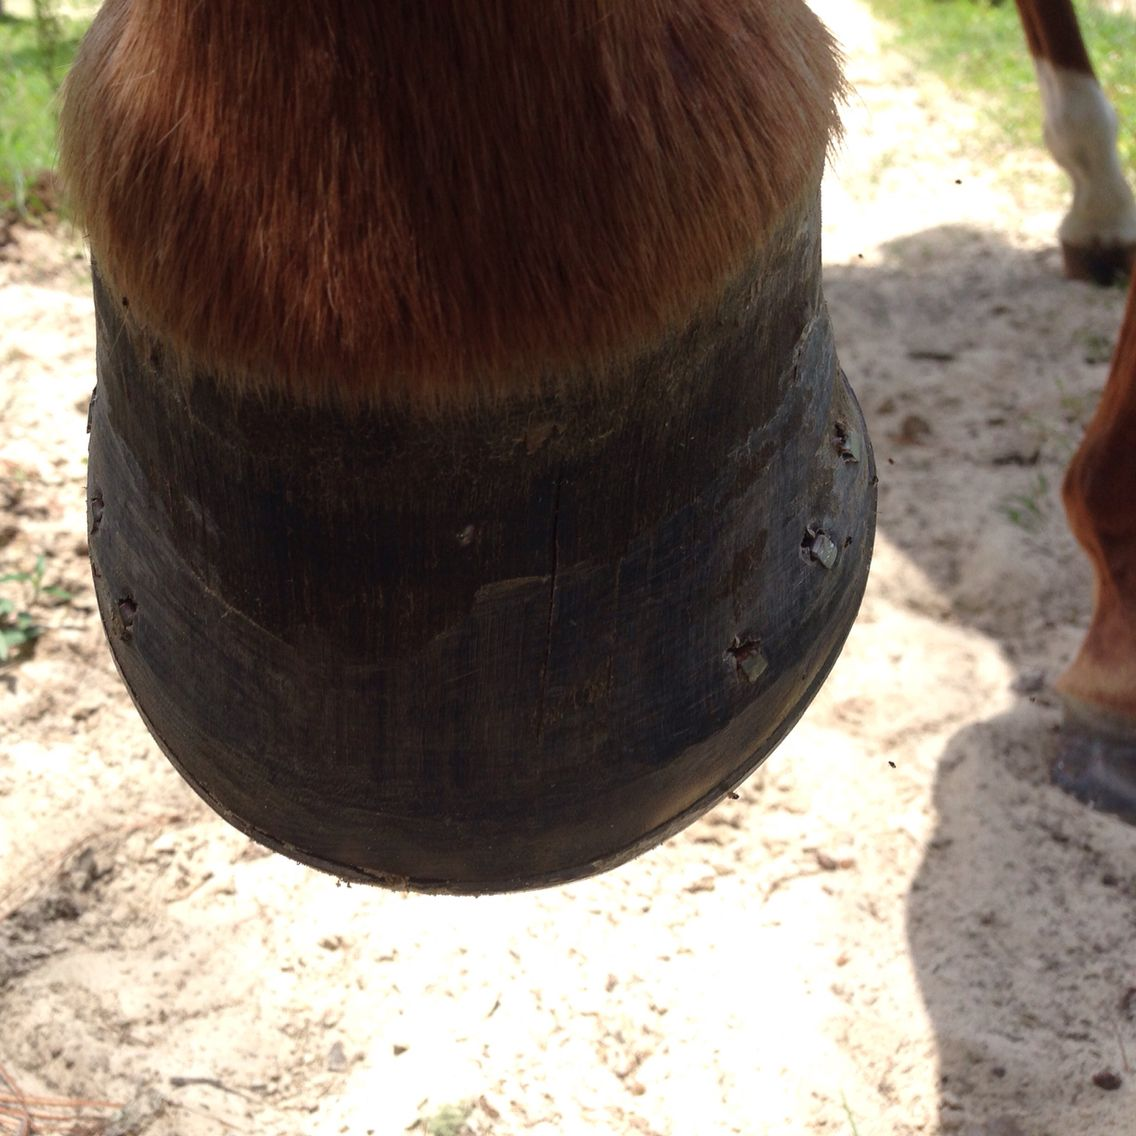 Shoes are good for horses that have a short heel